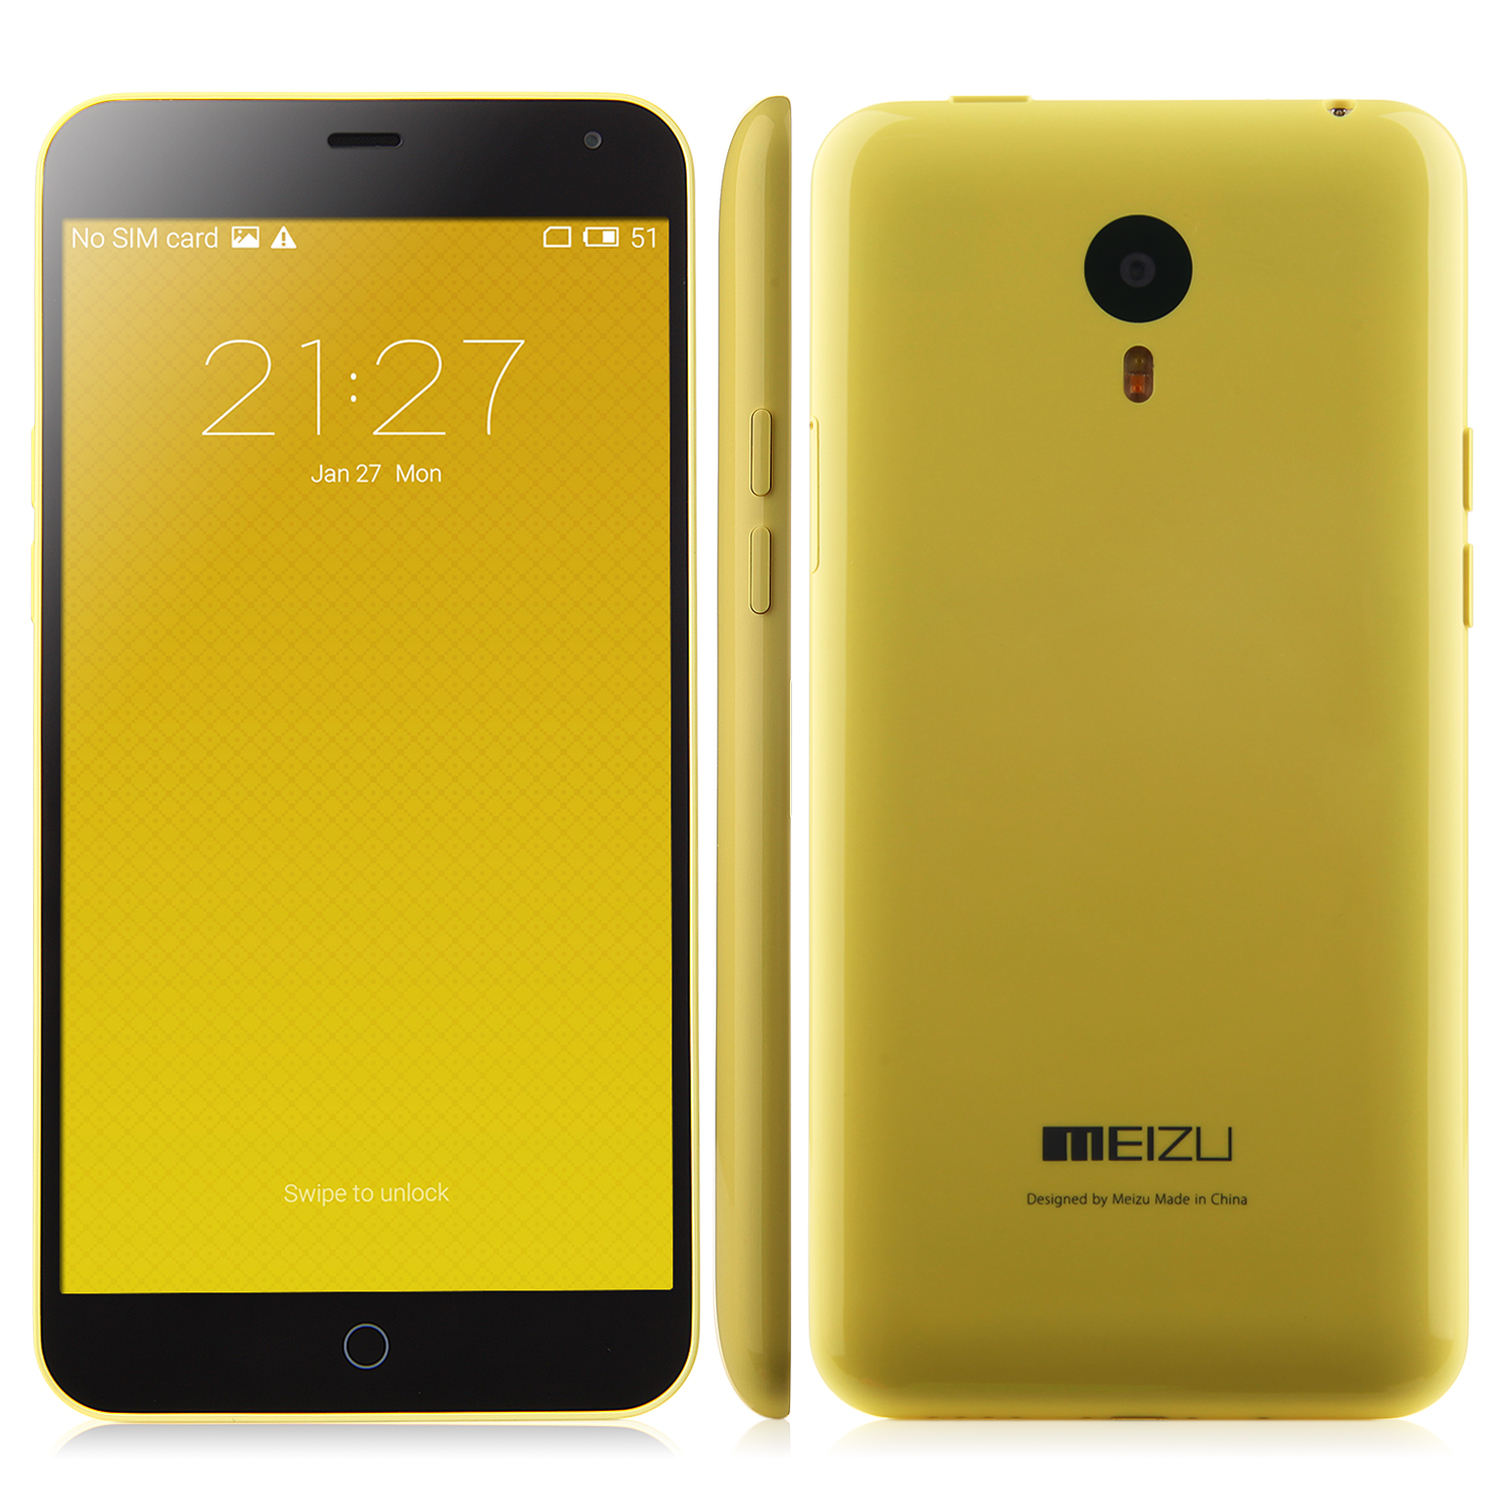 MEIZU m1 note 64bit Octa Core FDD LTE 5.5 Inch Gorilla Glass 2GB 32GB 3140mAh Yellow